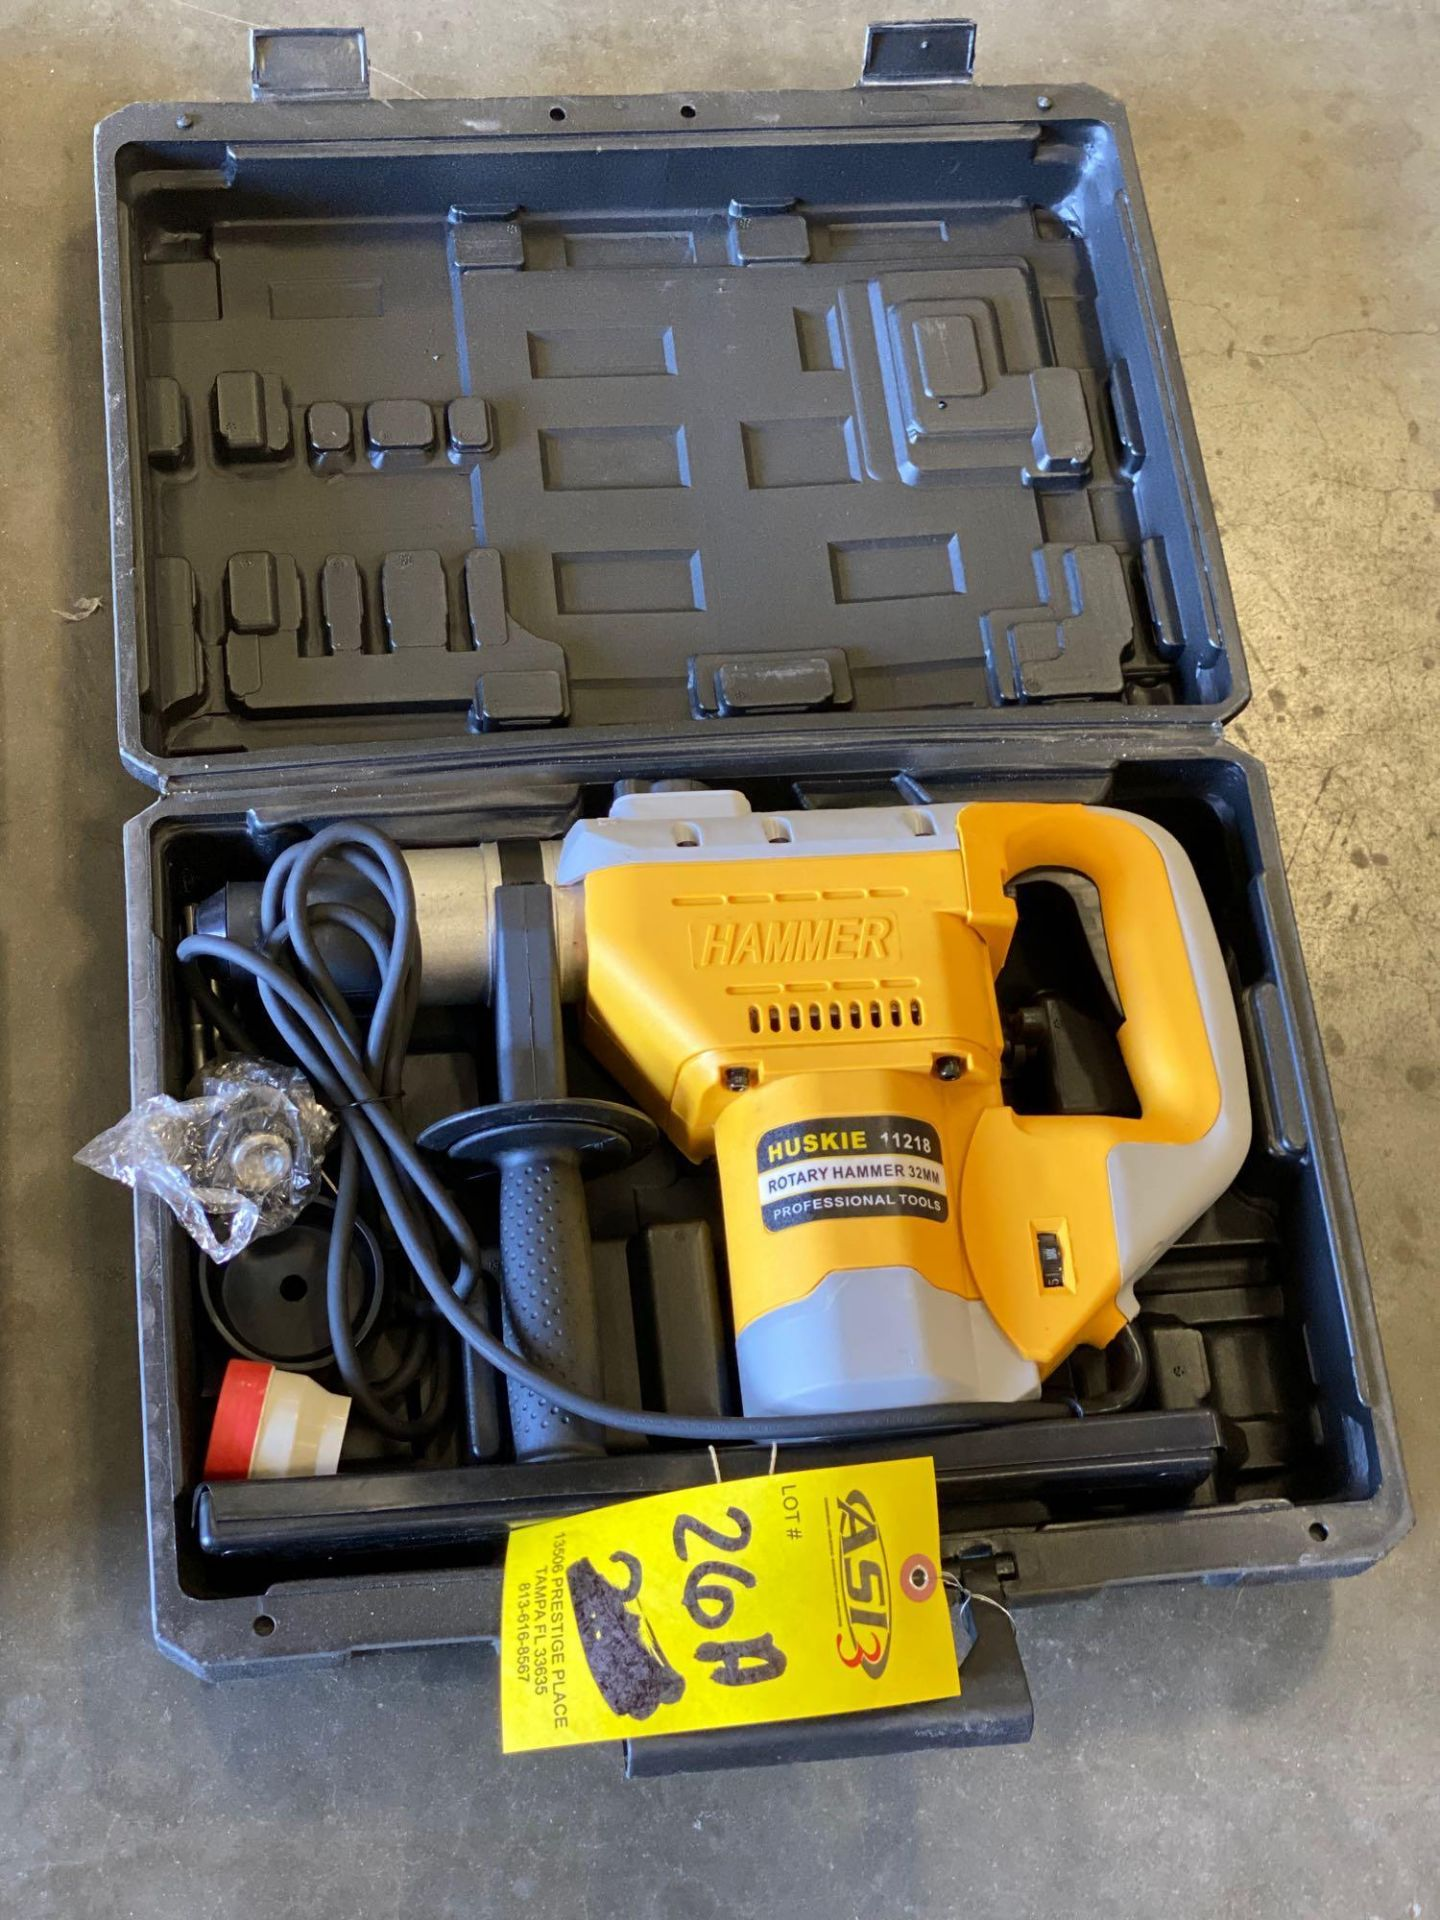 Lot 26A - UNUSED HUSKIE 11218 ROTARY HAMMER 32MM